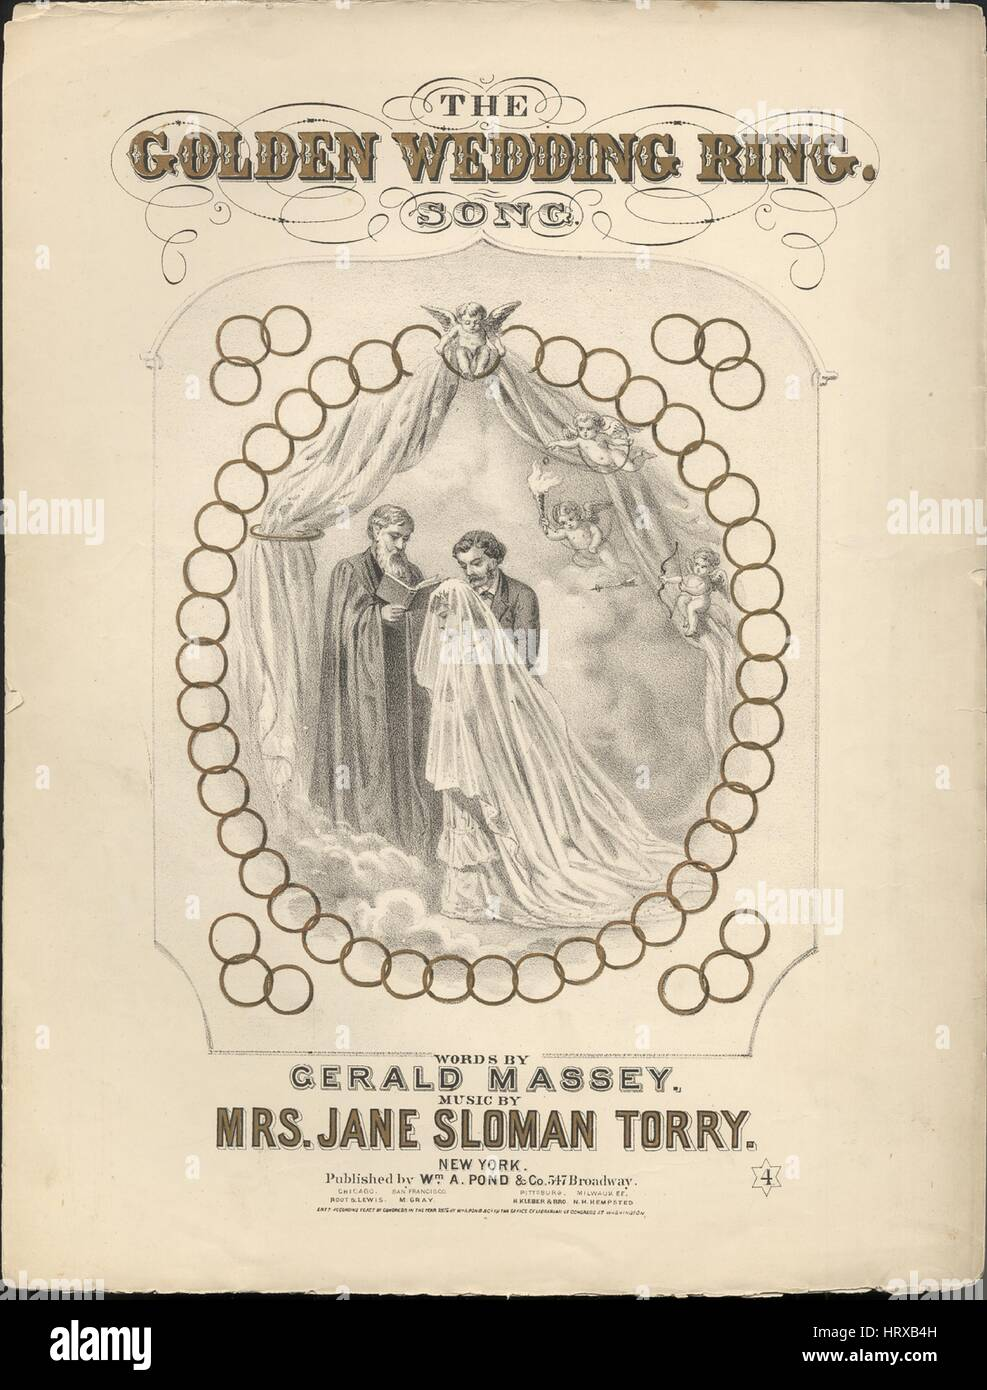 Sheet music cover image of the song The Golden Wedding Ring Song